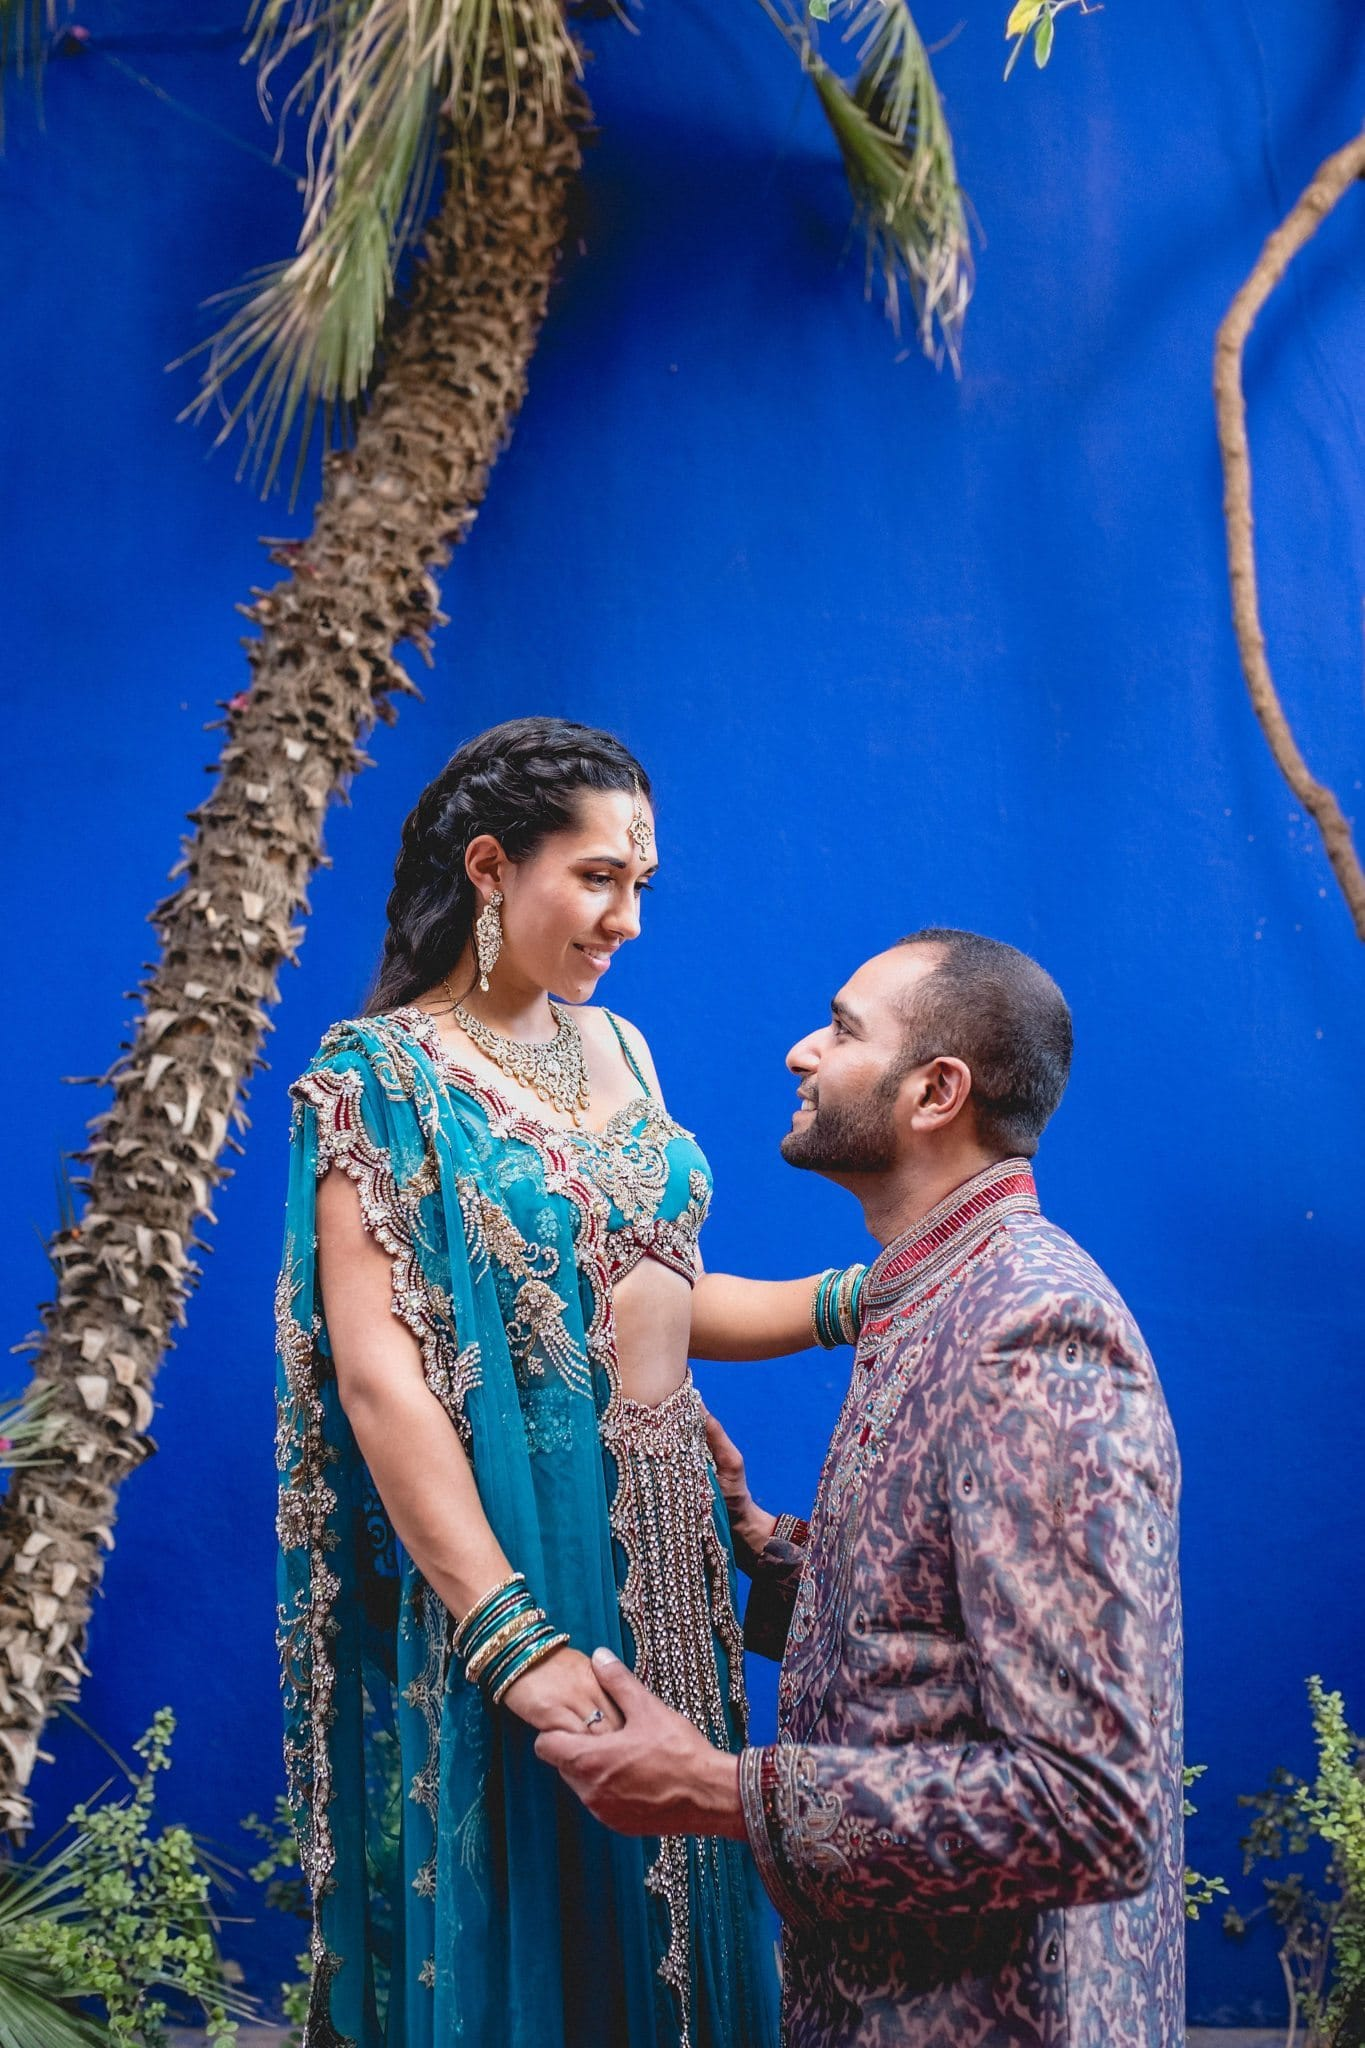 Asian bride and groom stand against the iconic blue walls of the Majorelle Gardens